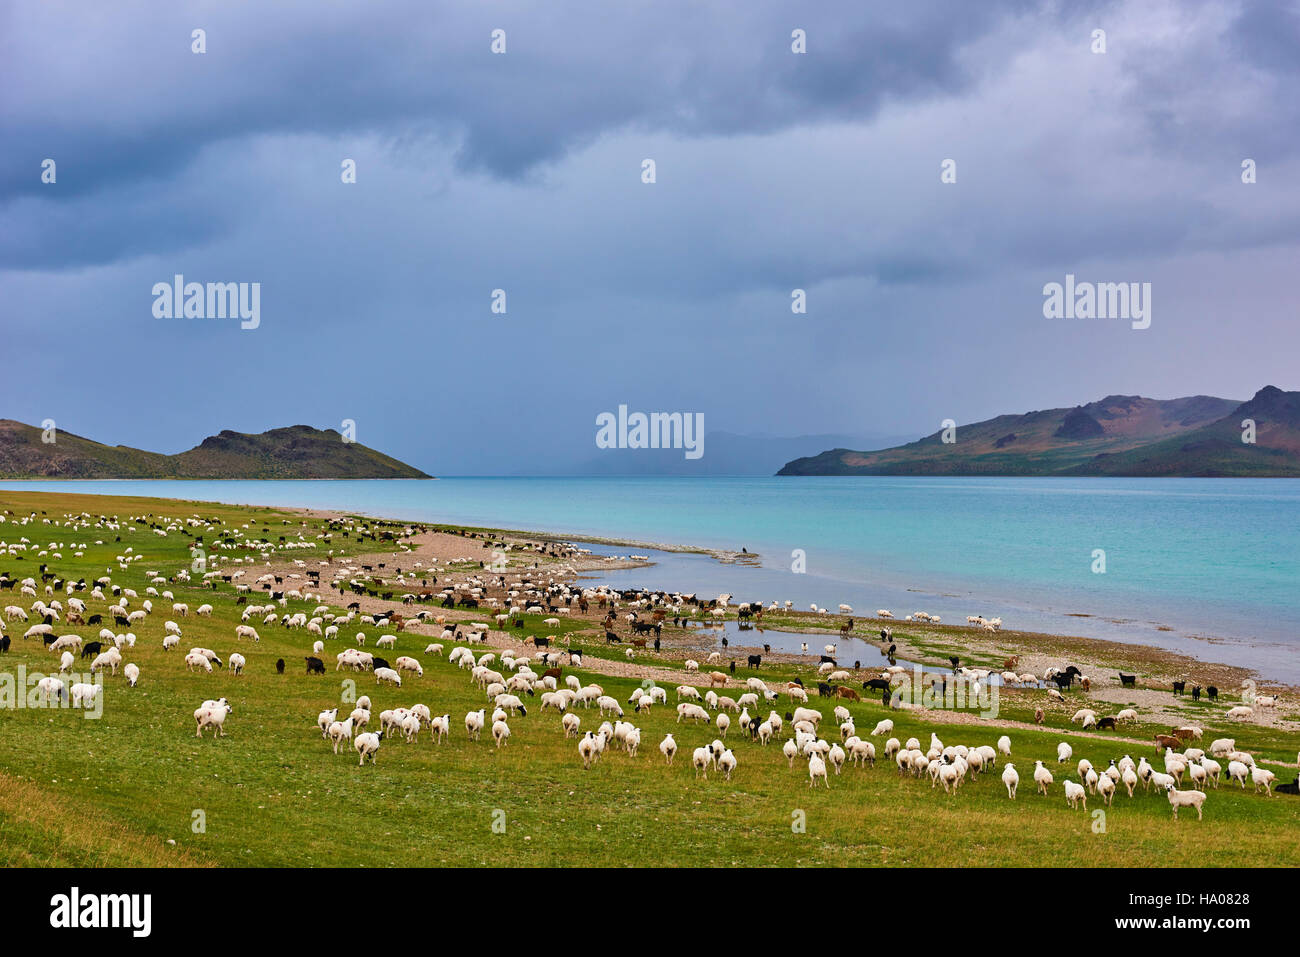 Mongolia, Zavkhan province, Khar Nuur lake, sheep herd - Stock Image